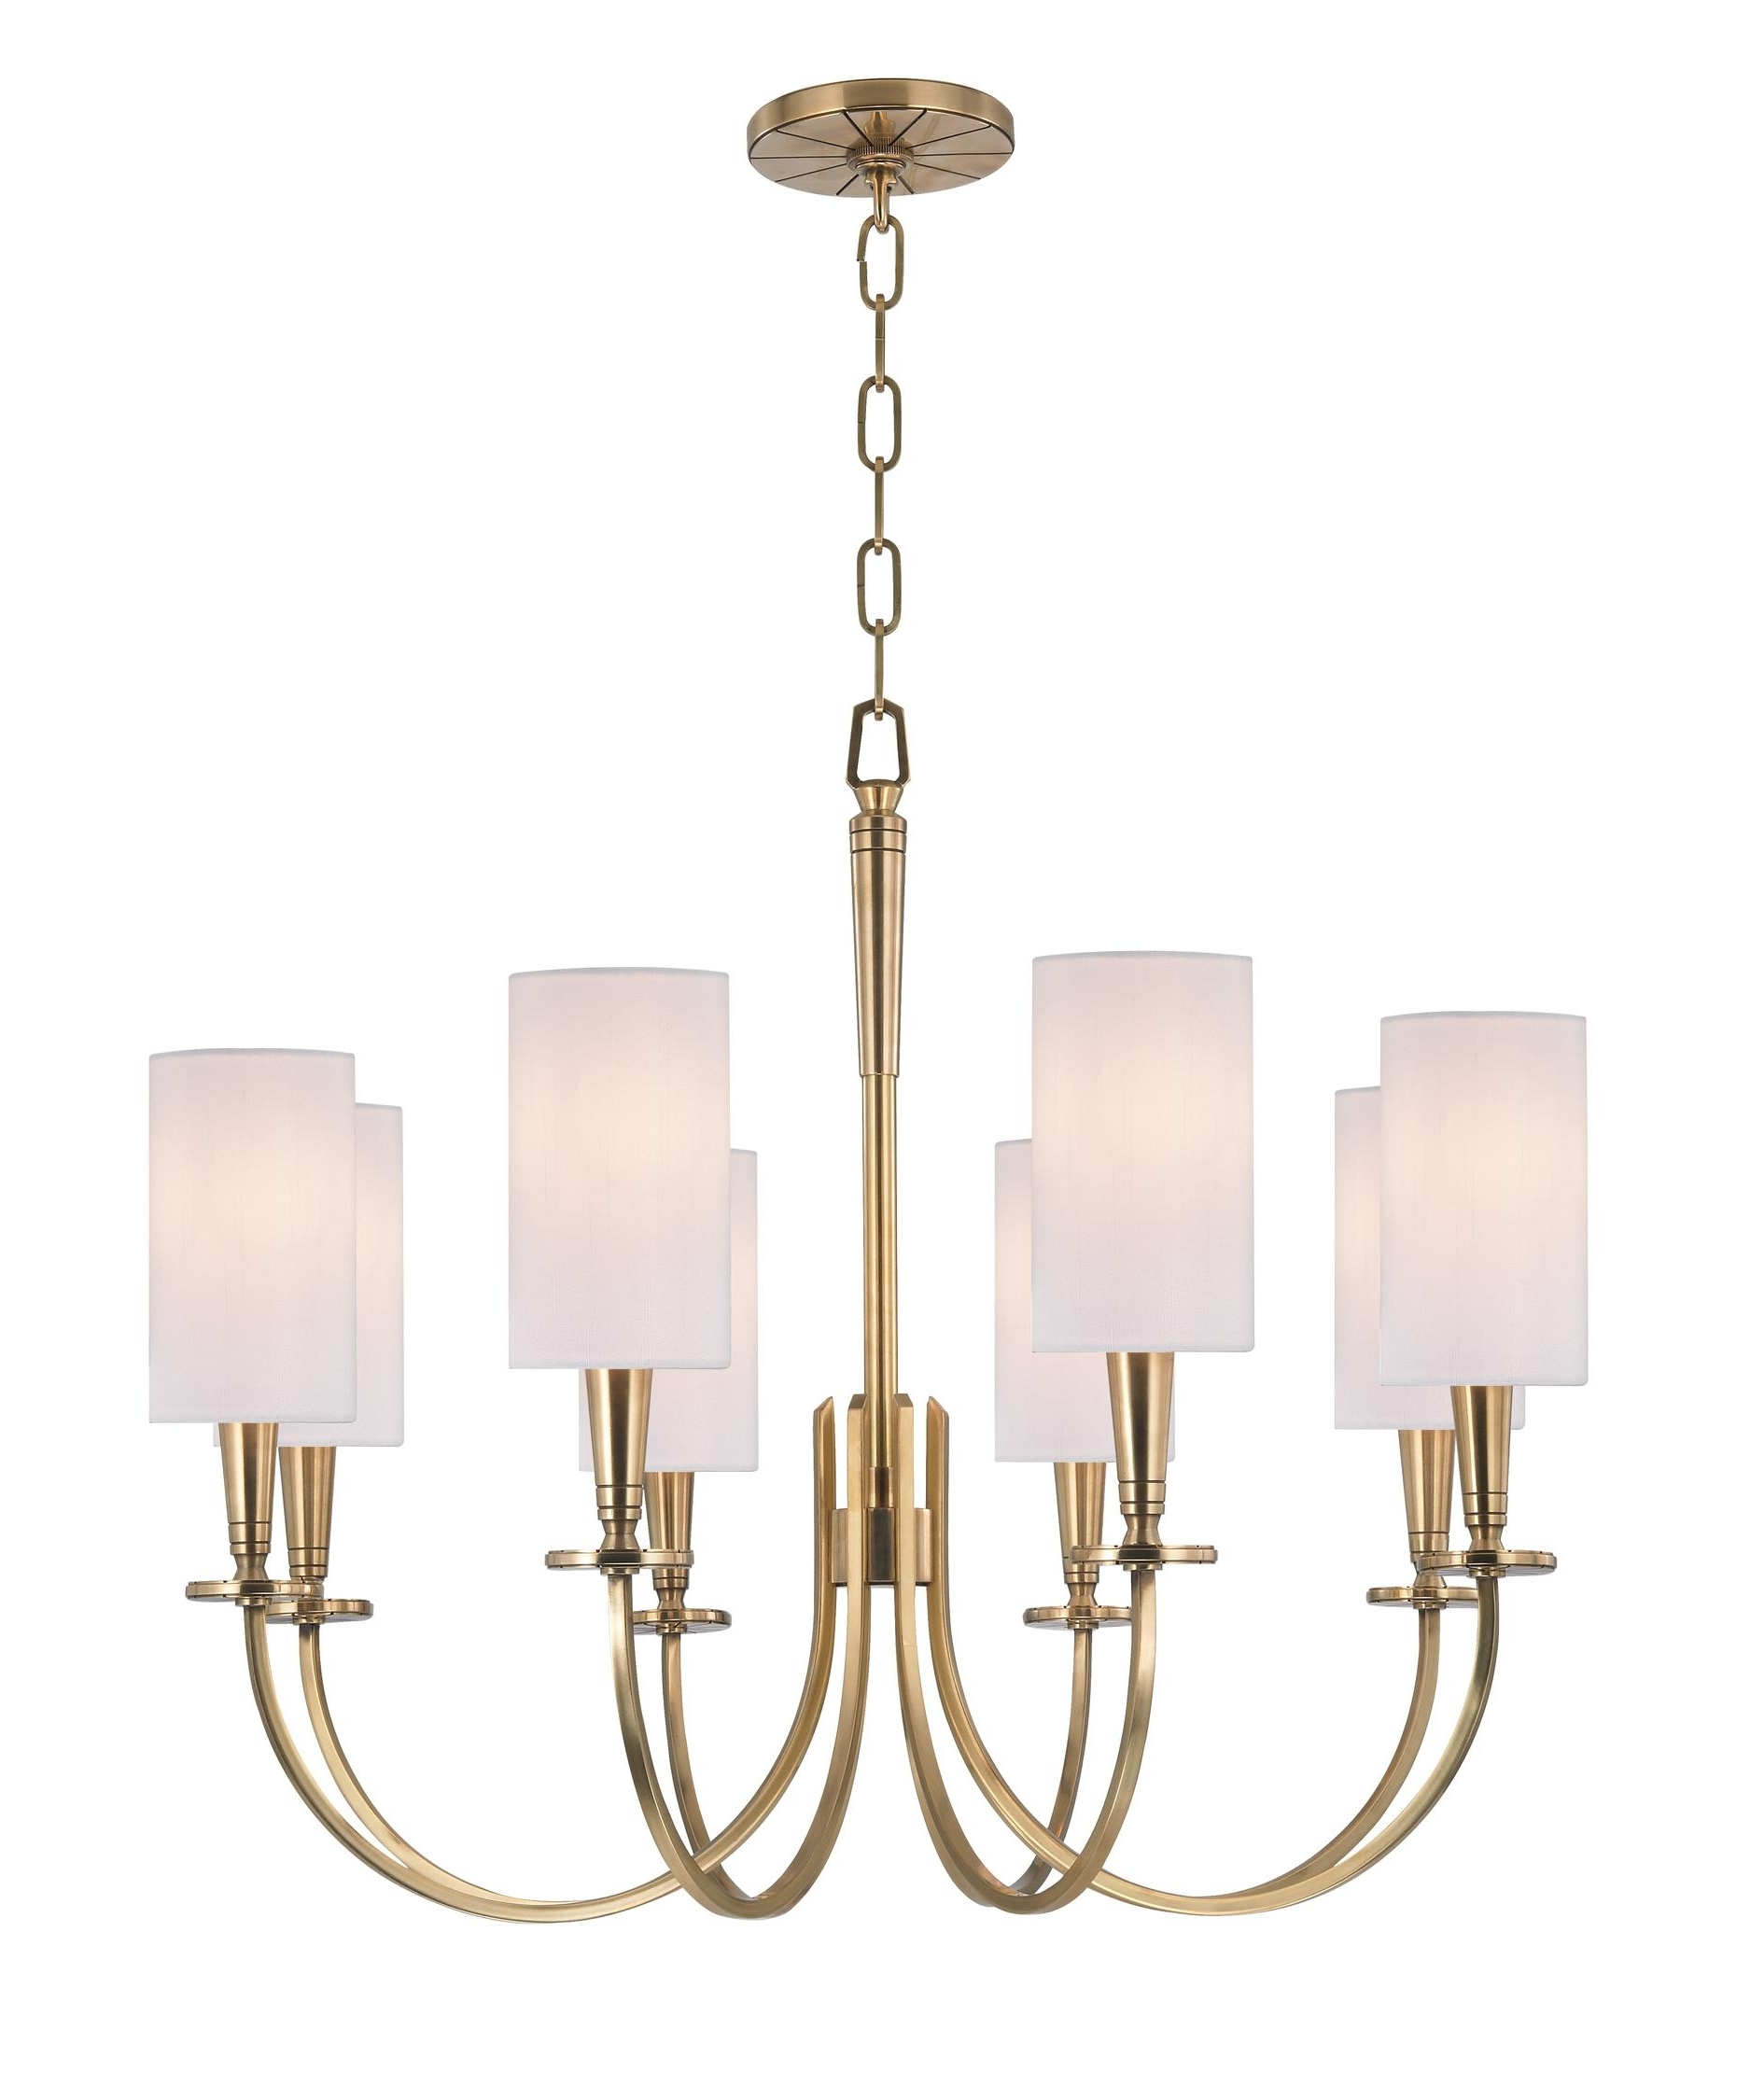 Latest Light : Agb Hudson Valley Chandelier Lighting Wall Sconces Shown In Within Antique Mirror Chandelier (View 8 of 15)